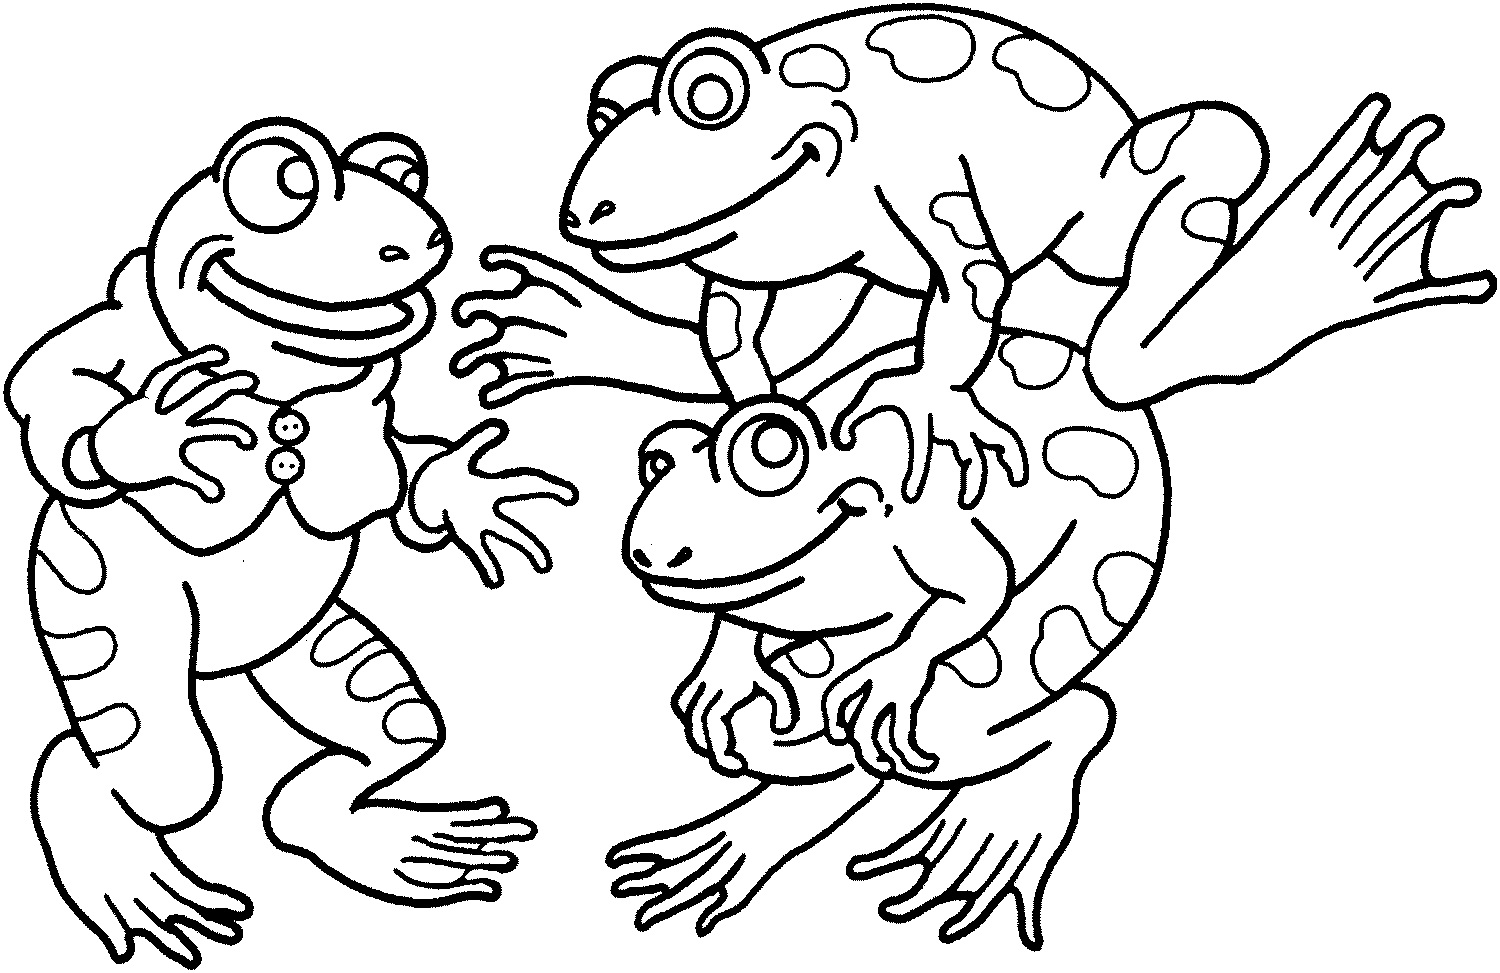 Free Printable Frog Coloring Pages For Kids | Animal Place